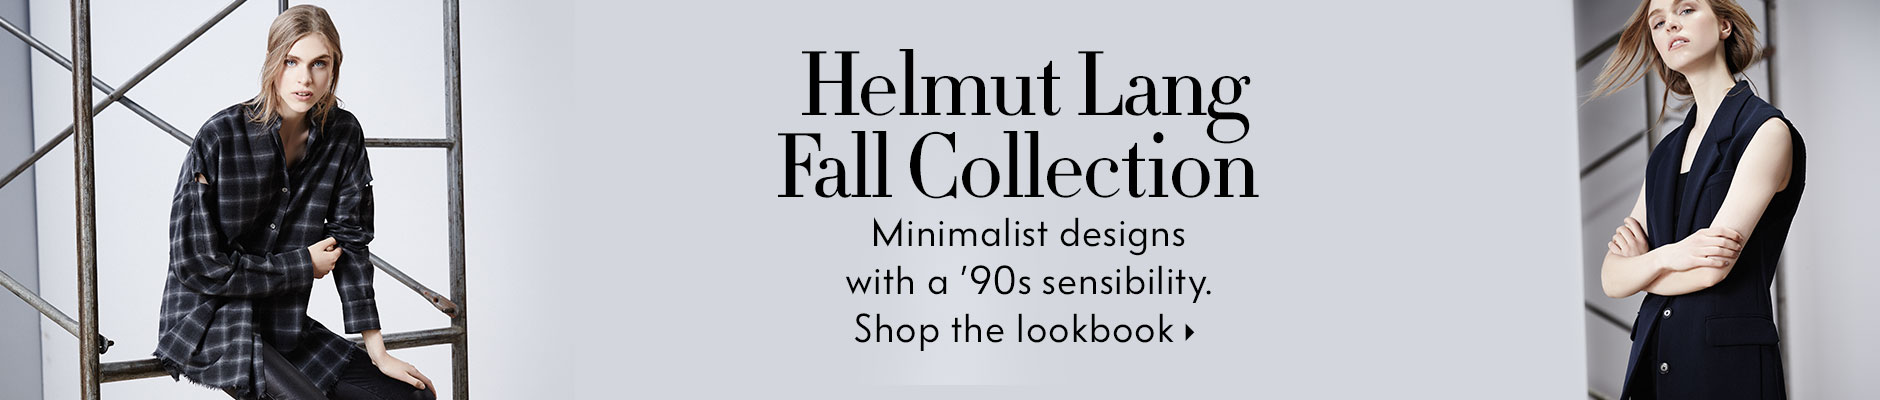 Helmut Lang Fall Collection - Minimalist designs with a '90s grunge-rock sensibility.